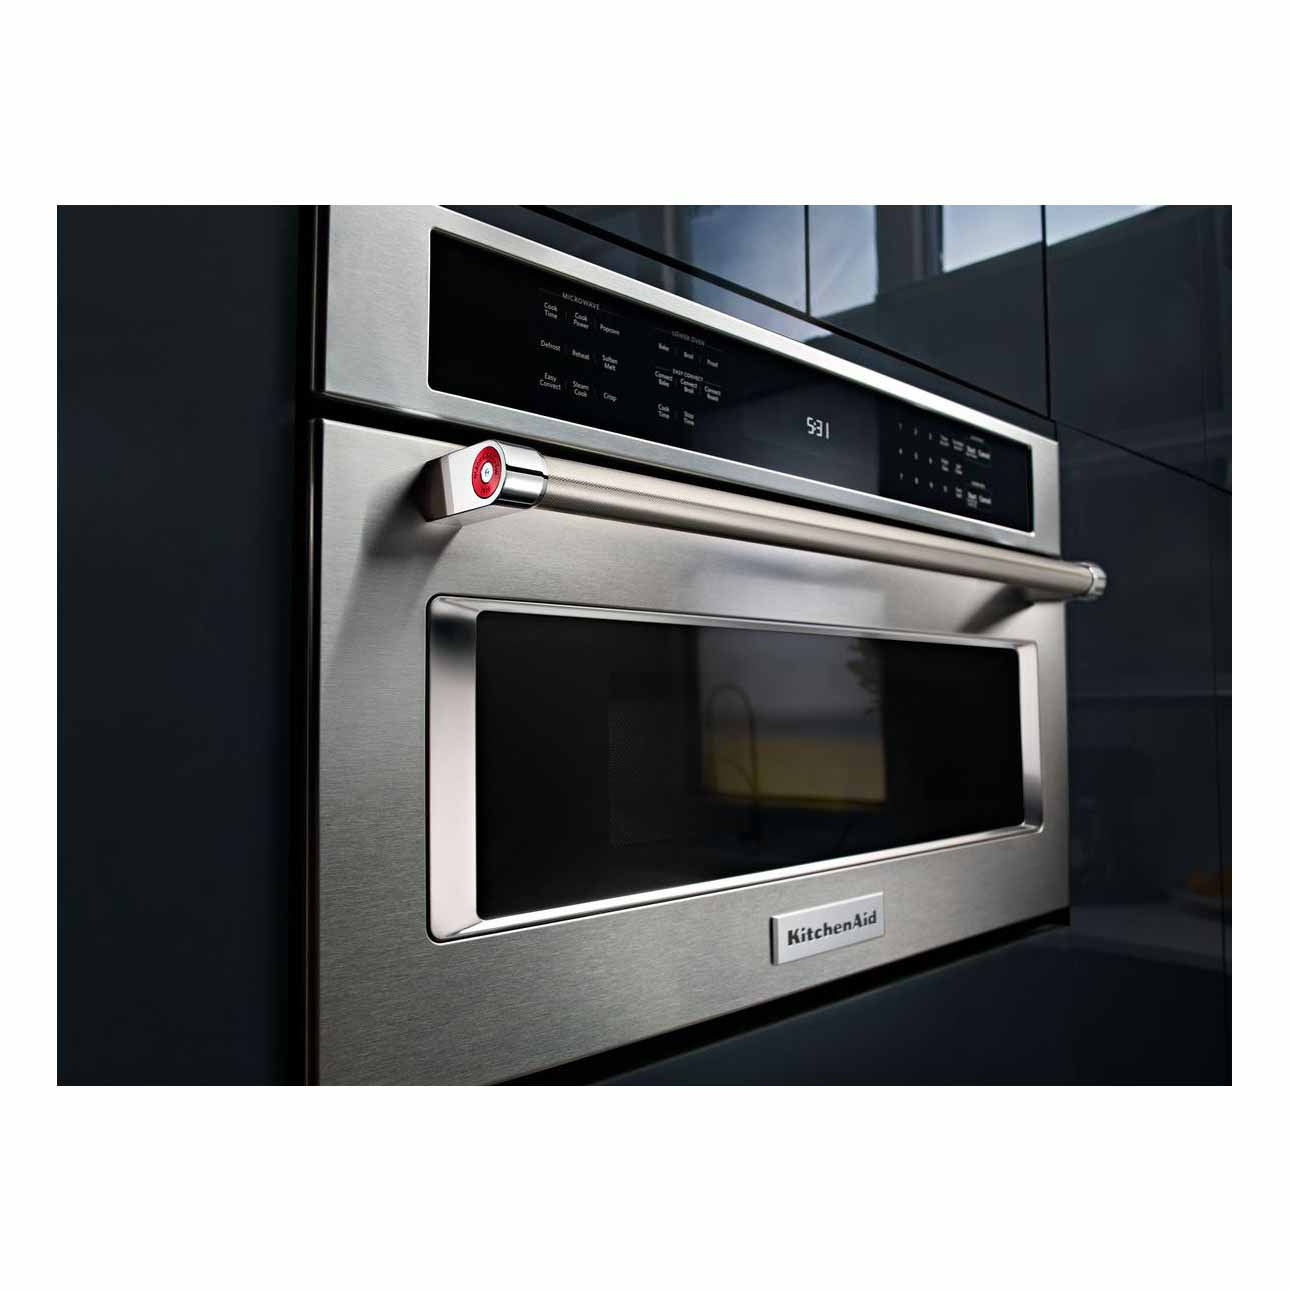 "KitchenAid KMBP100ESS 30"" Built-In Microwave Oven w/ Convection Cooking - Stainless Steel"